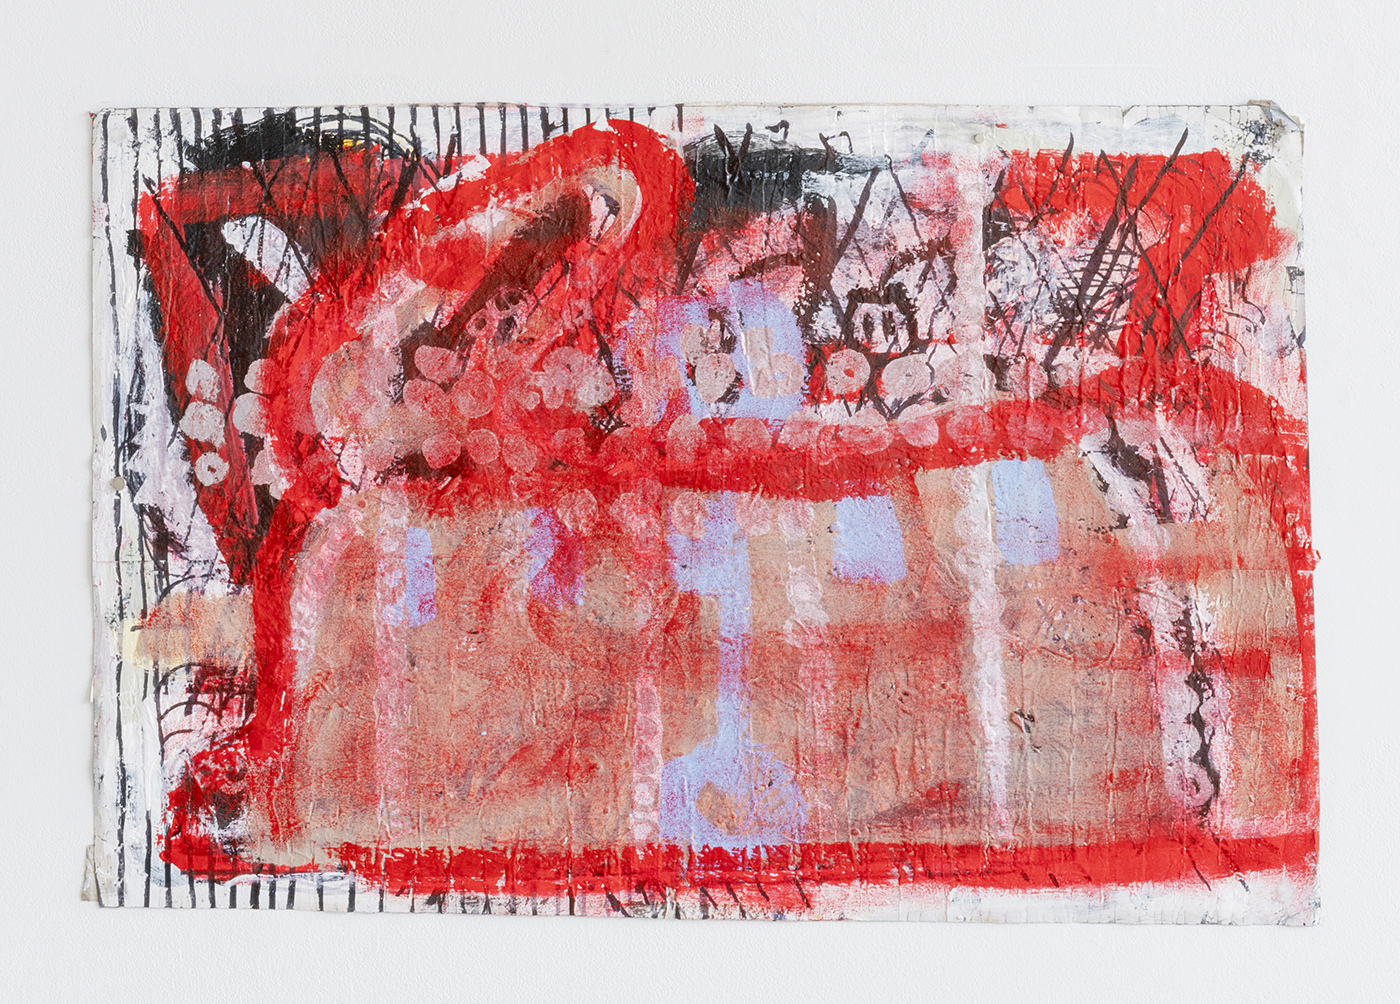 Luchs_Red_Rabbit_3_on_paper_26x40_2020_DESOUSA_GALLERY_web